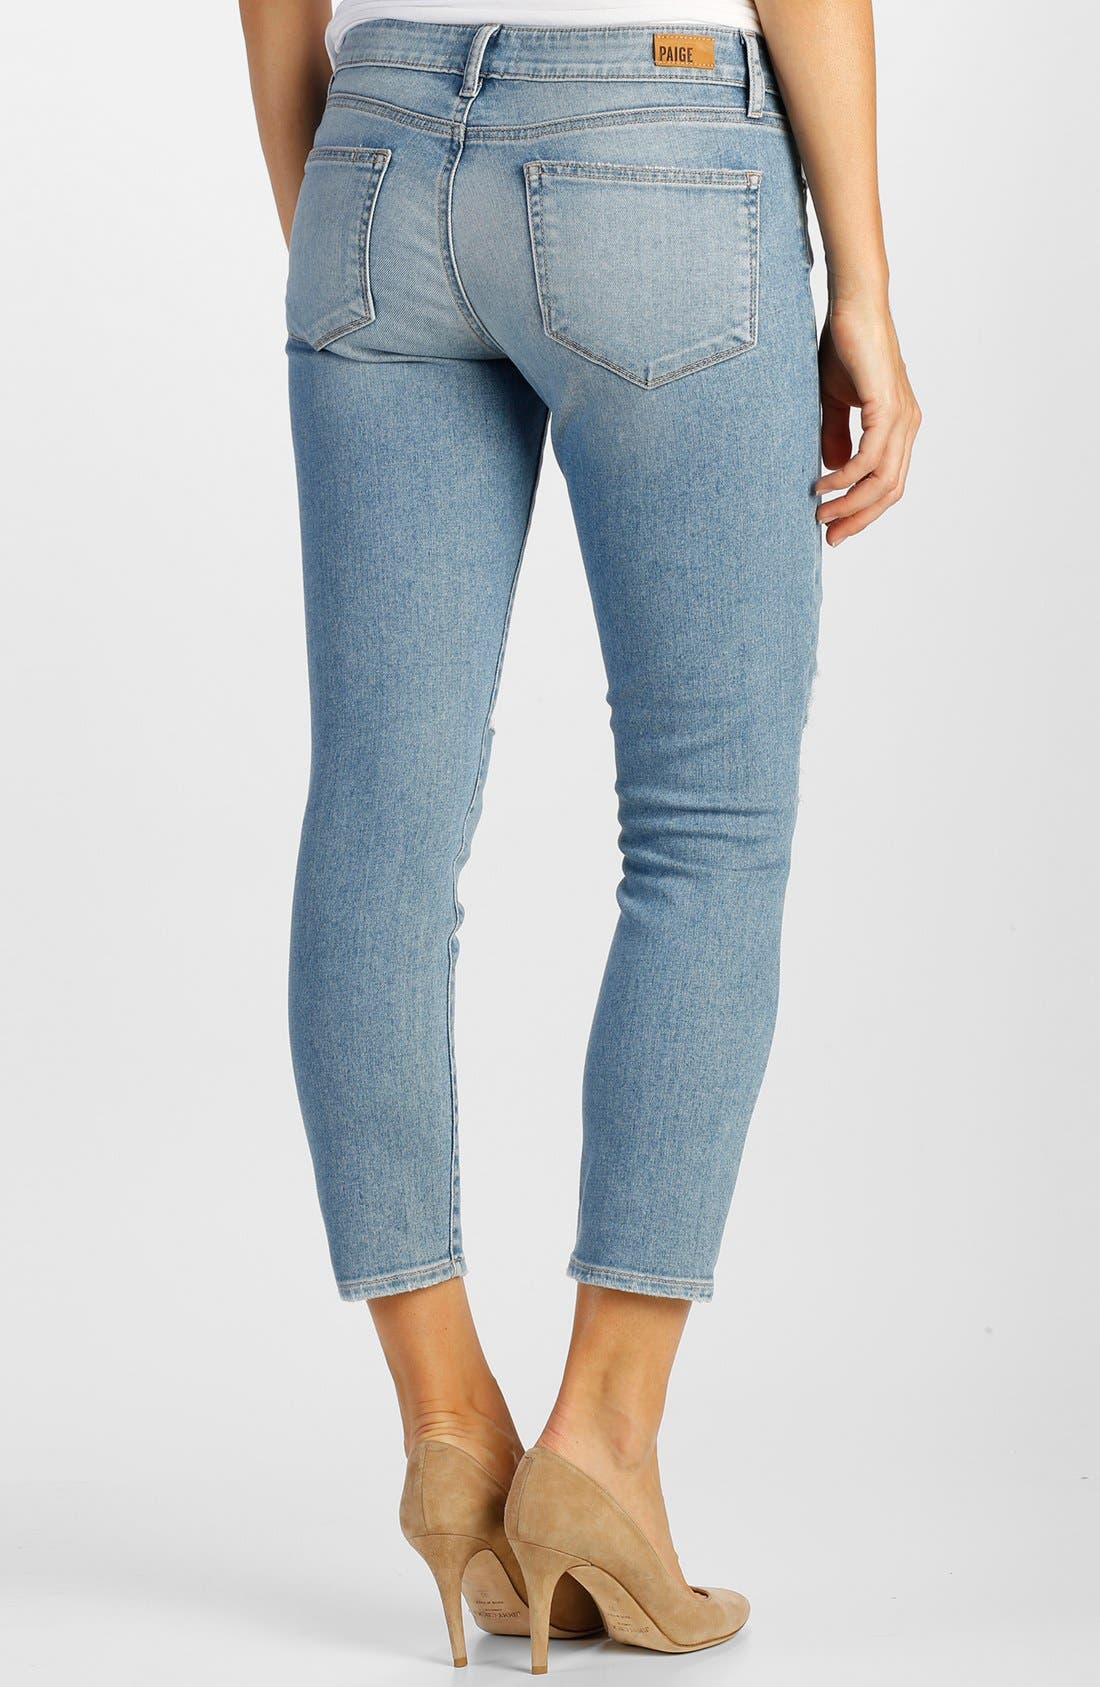 Alternate Image 2  - Paige Denim 'Verdugo' Crop Skinny Jeans (Serena Destructed)